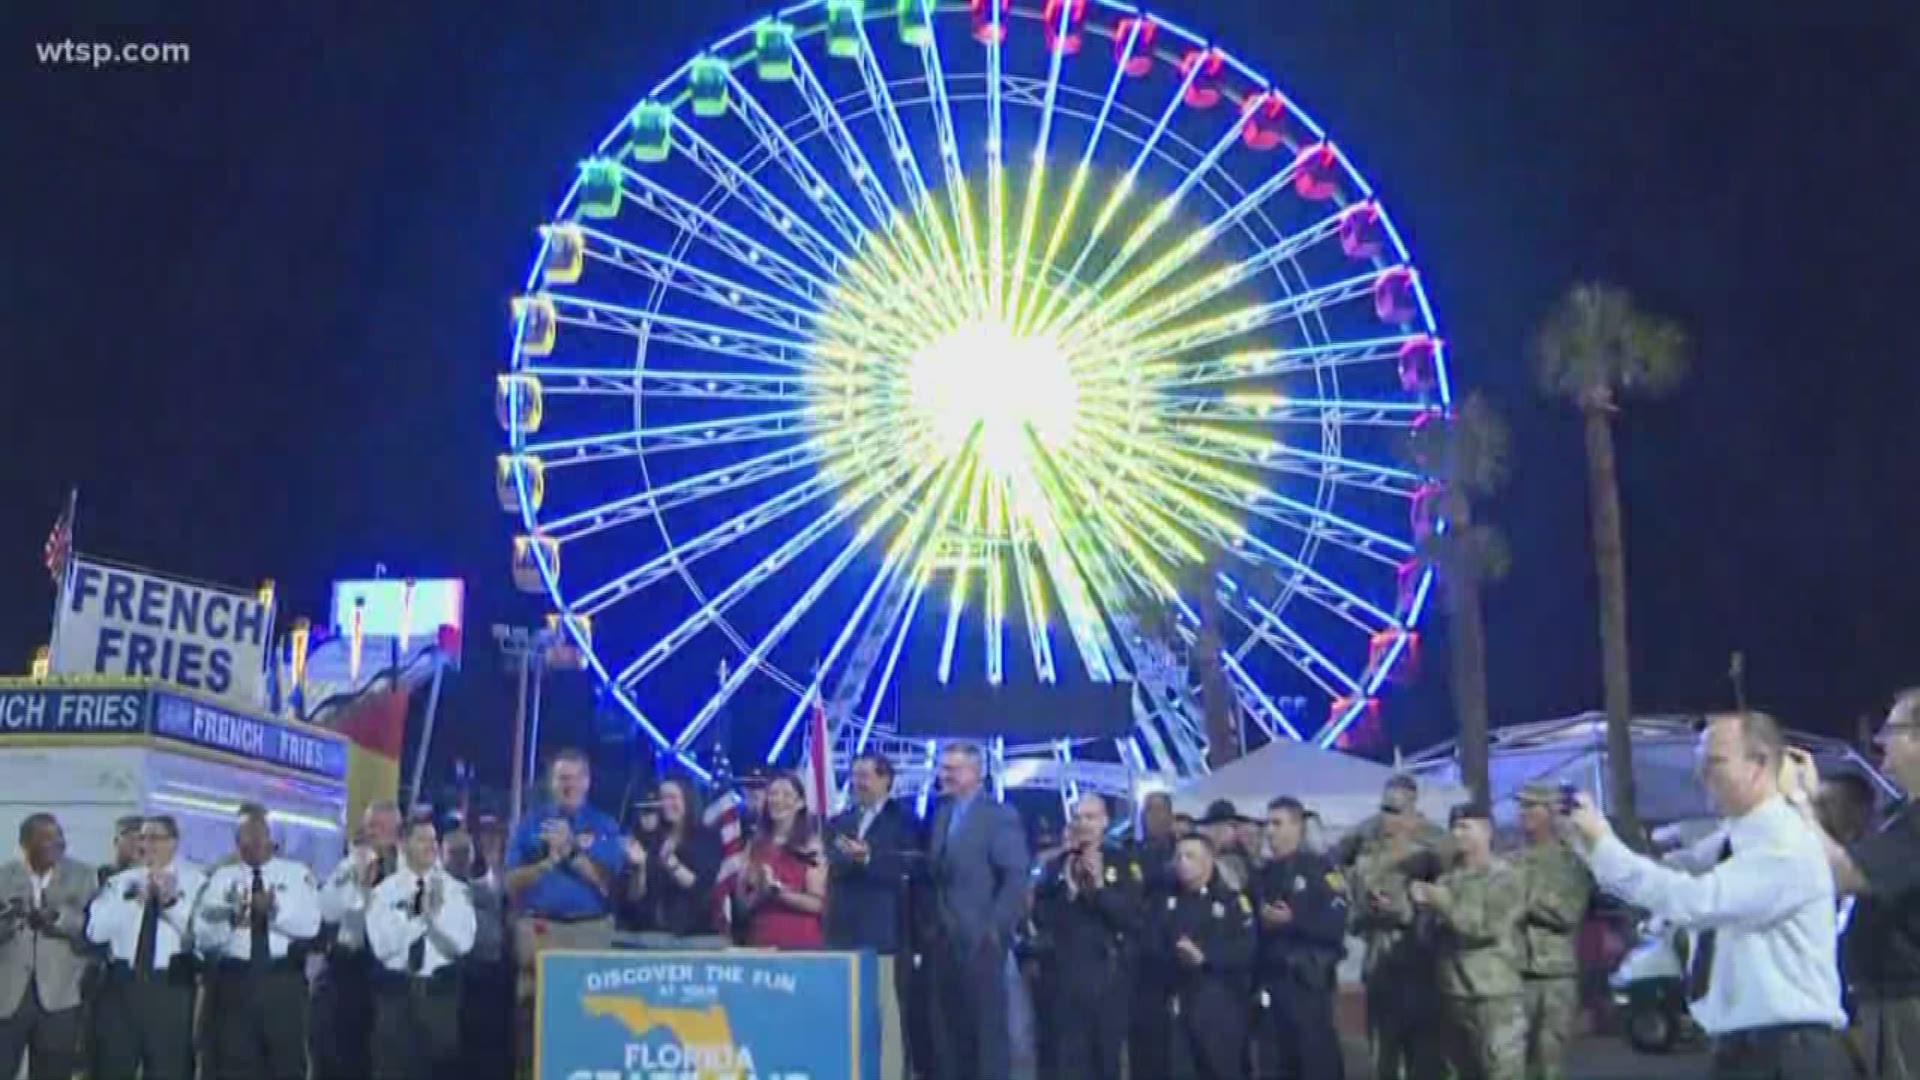 Gov. Ron Desantis Flips Switch To Kick Off Florida State Fair Inside Schedule Of Events For Monday At Florida State Fairgrounds